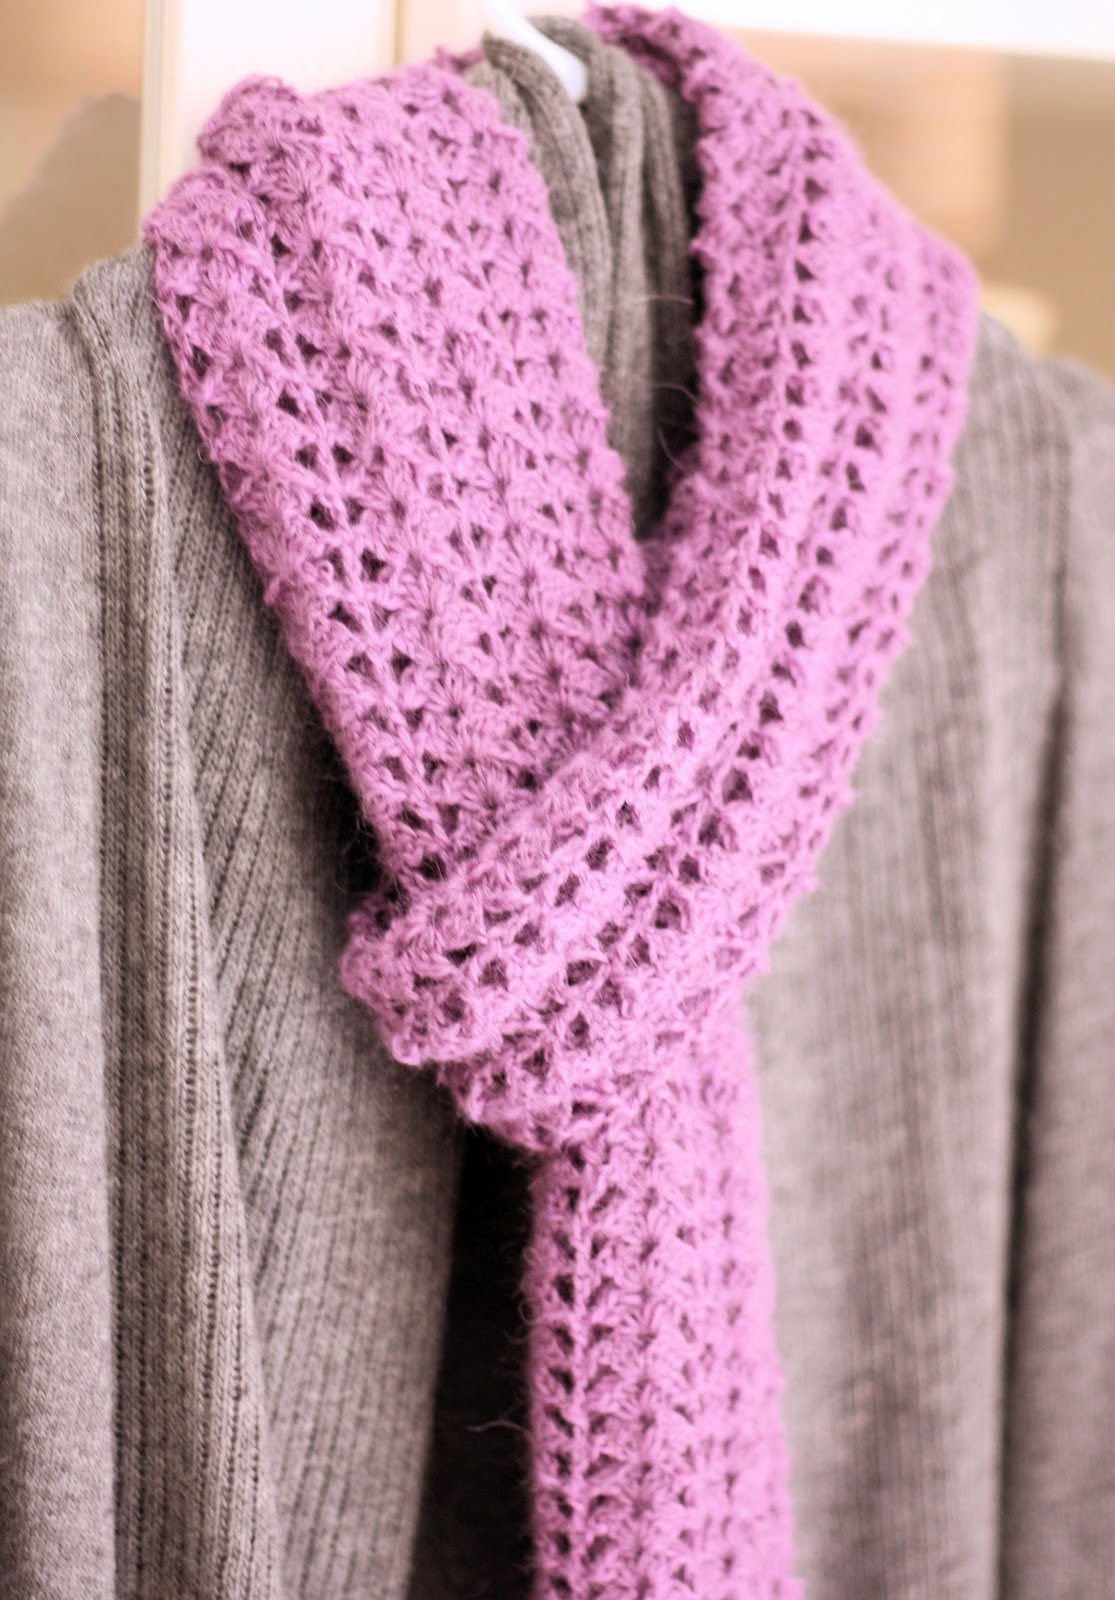 Lovely Free Crochet Scarf Patterns for Beginners Crochet Scarf Patterns for Beginners Of Perfect 47 Pictures Crochet Scarf Patterns for Beginners